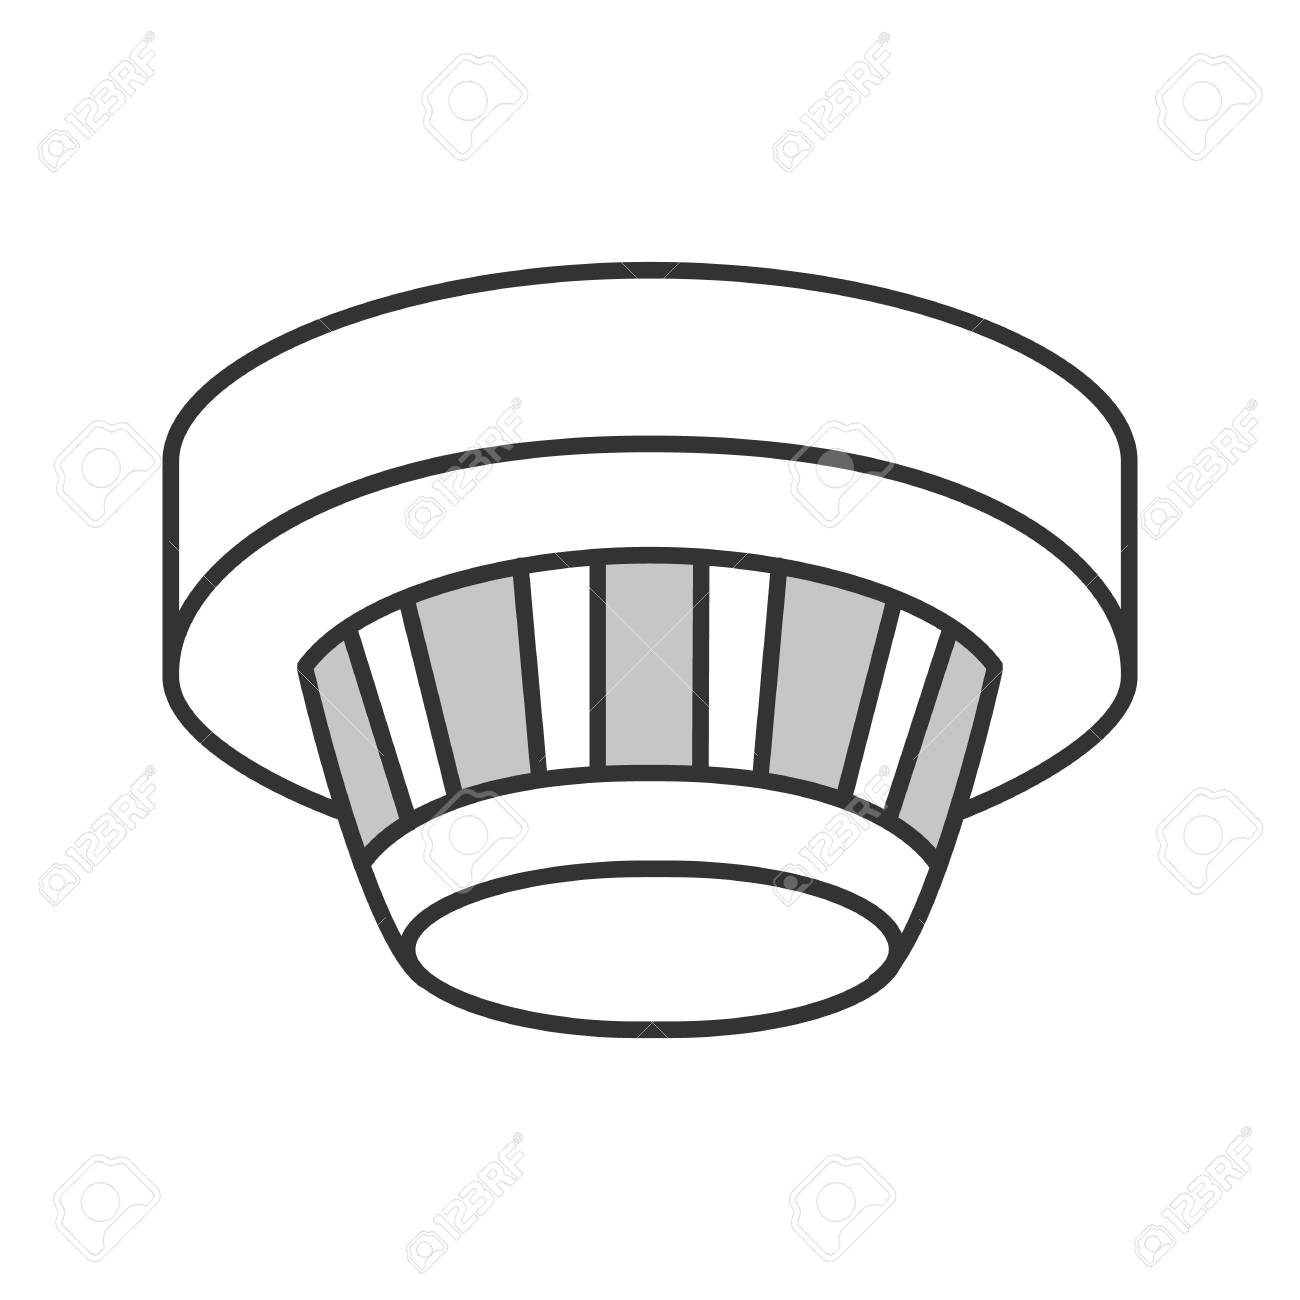 hight resolution of smoke detector color icon fire alarm system isolated vector illustration stock vector 98948724